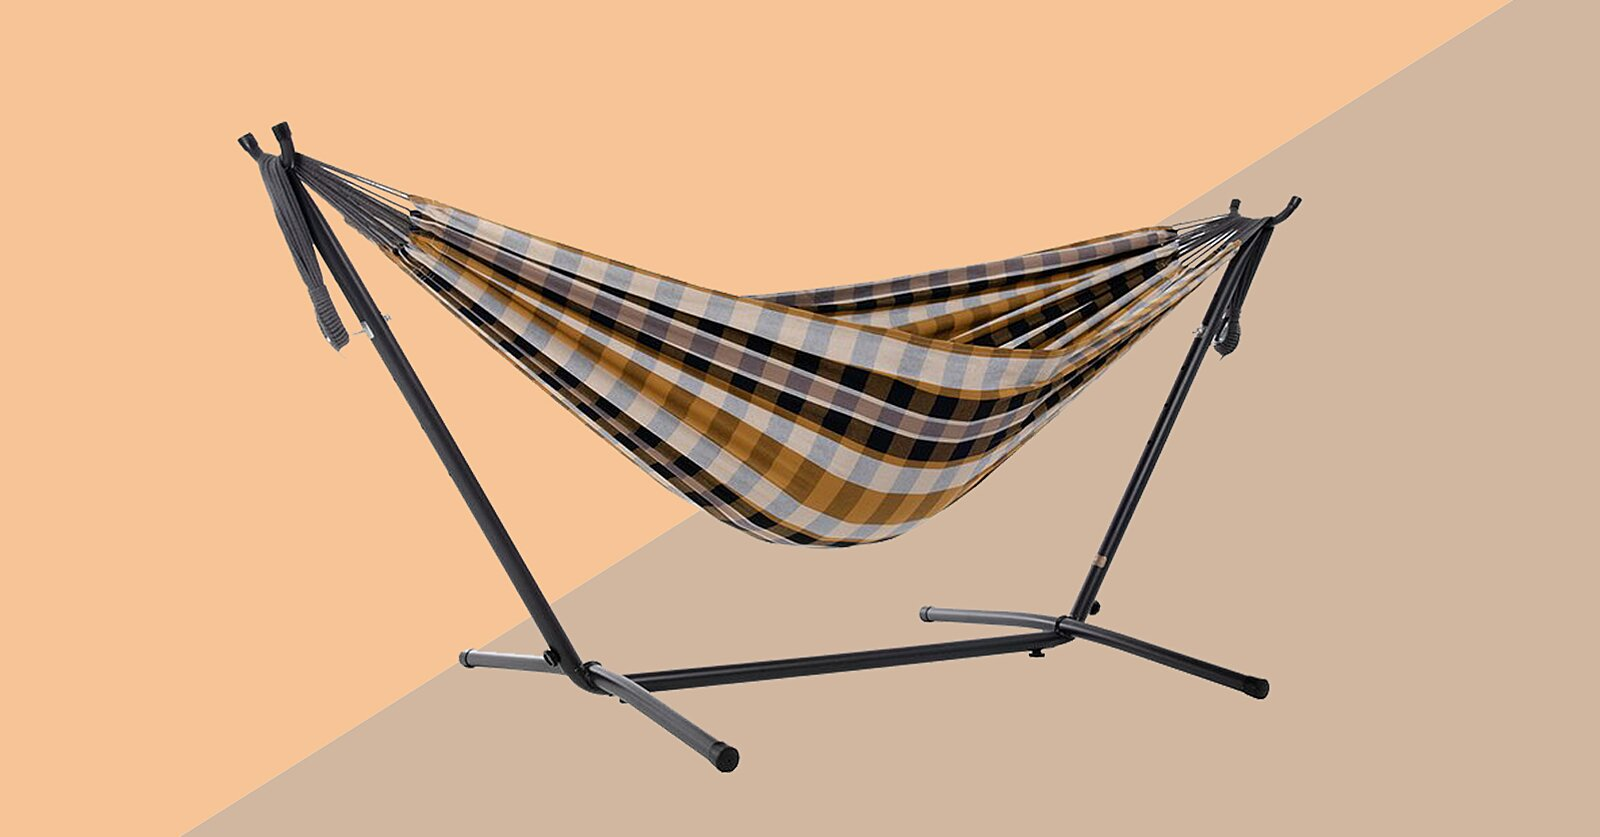 The 8 Best Hammocks for Backyards, Rooftops, Parks, and More